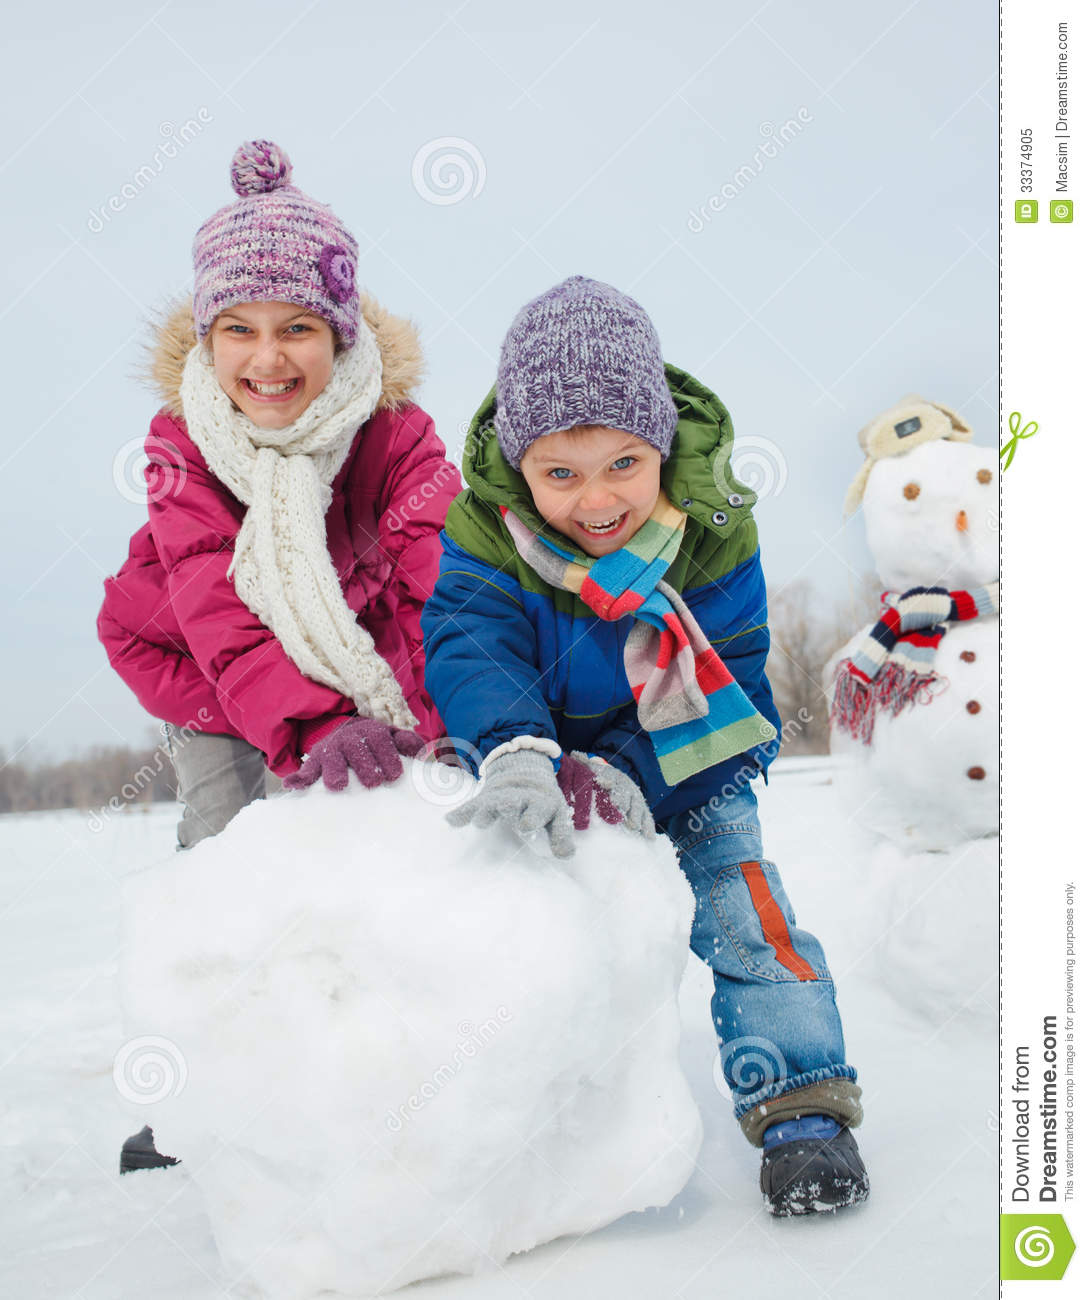 Happy beautiful children building snowman outside in winter time.